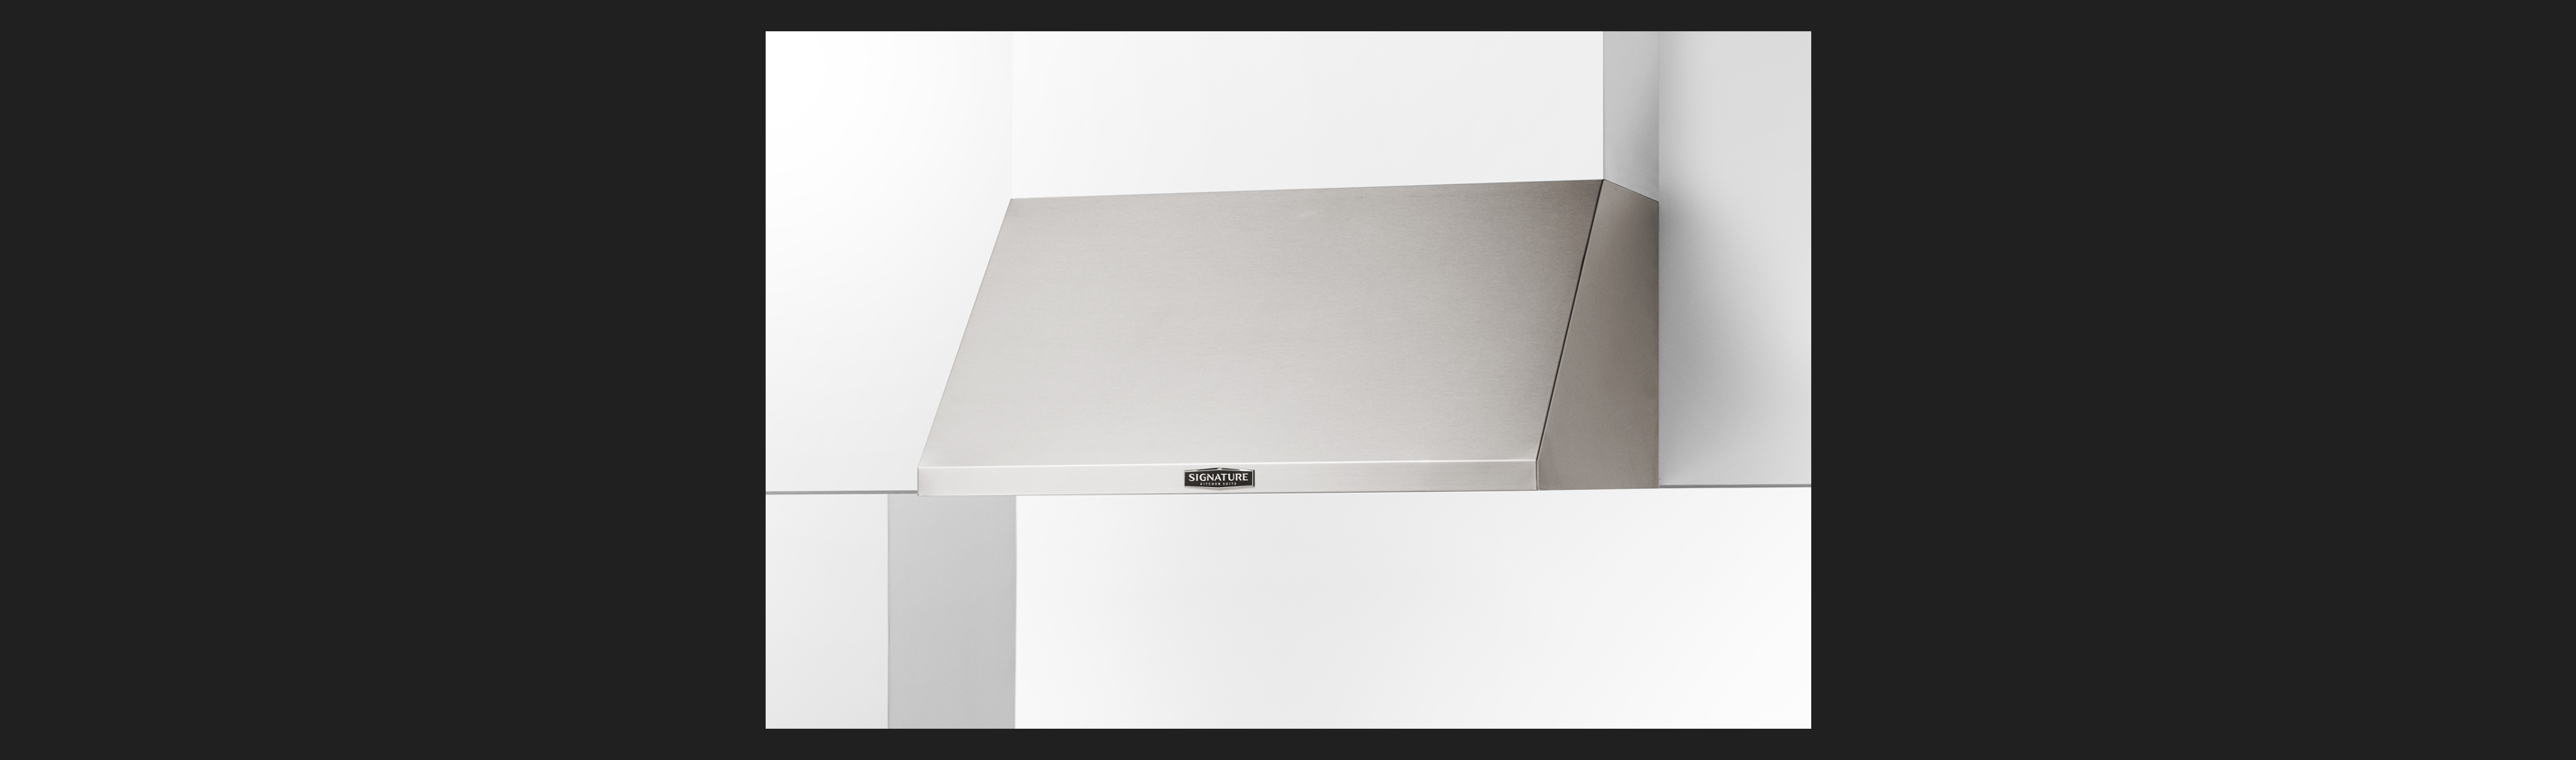 Ventilation Hood from Signature Kitchen Suite